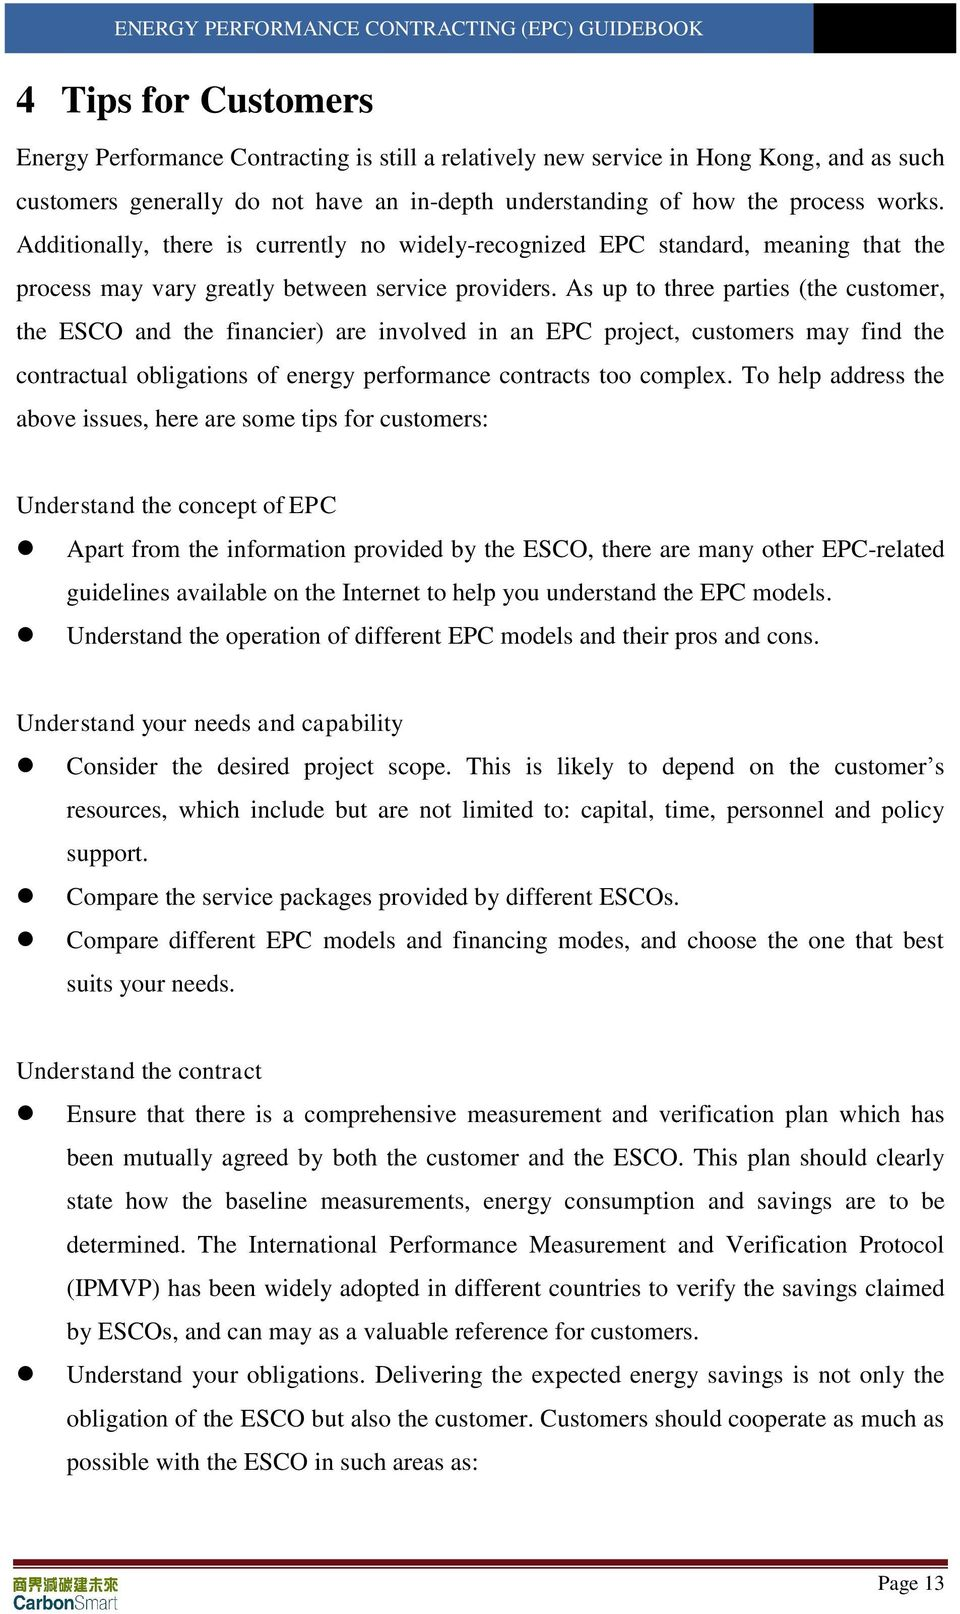 As up to three parties (the customer, the ESCO and the financier) are involved in an EPC project, customers may find the contractual obligations of energy performance contracts too complex.